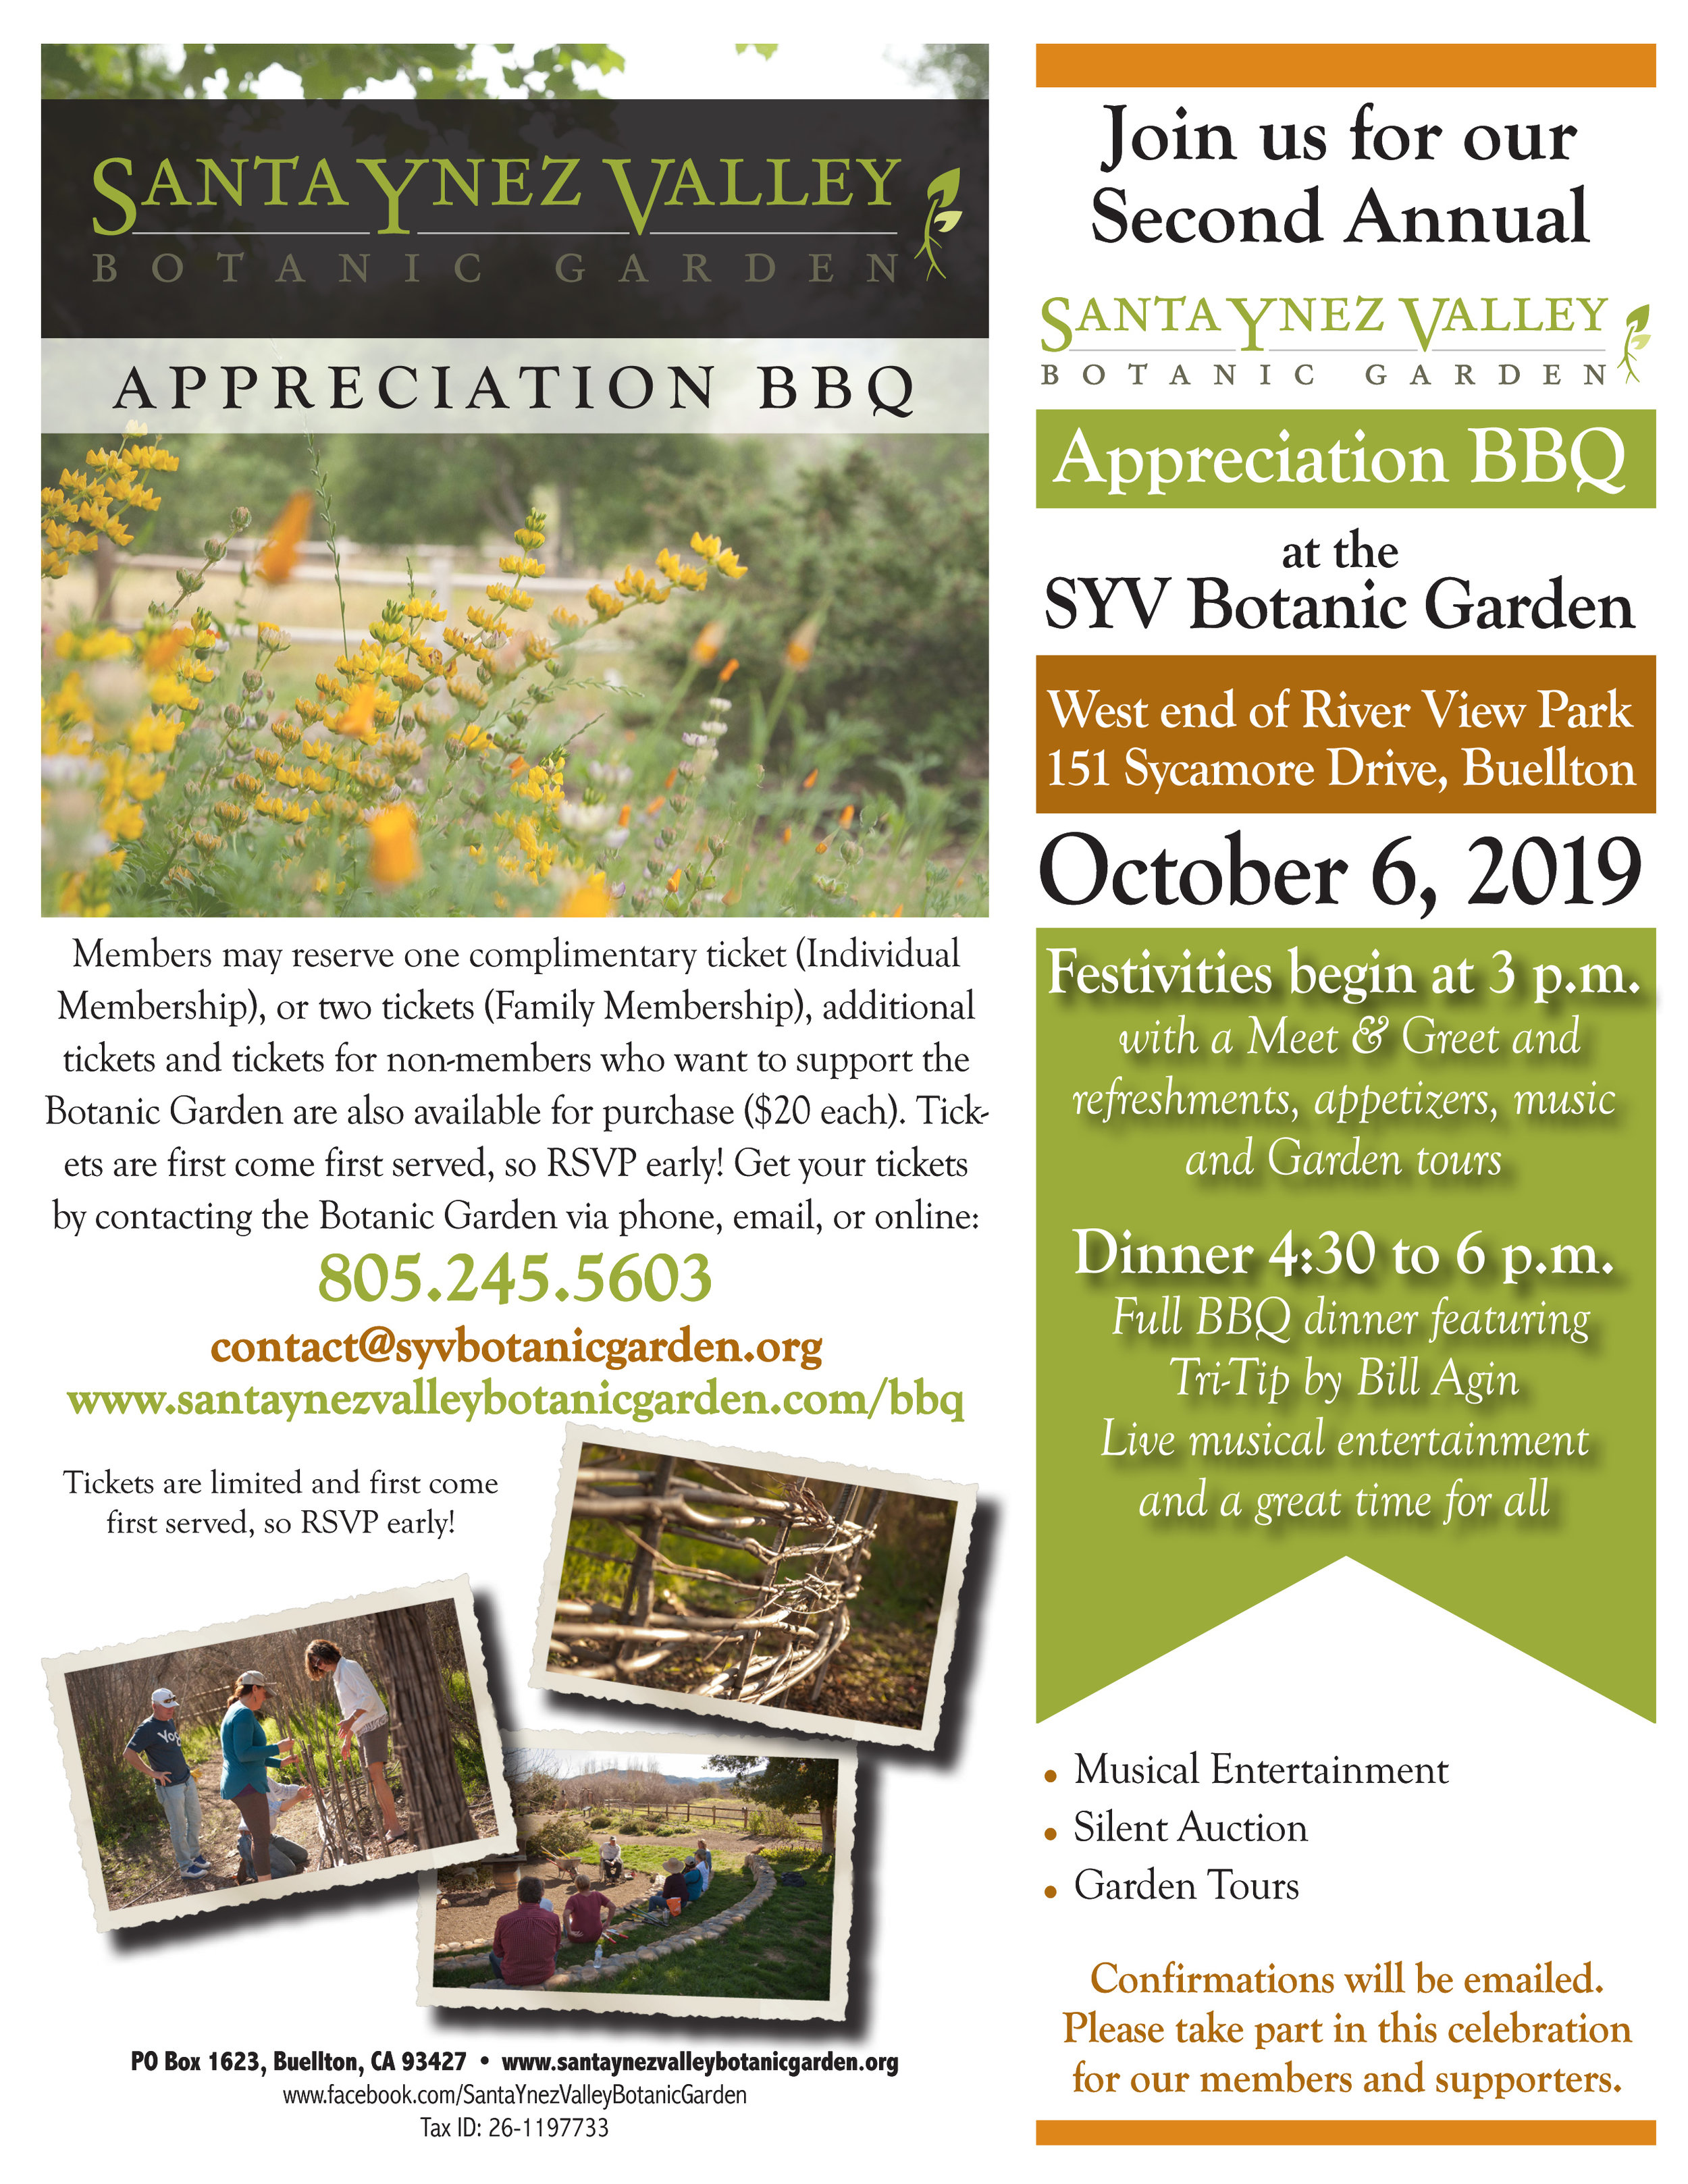 AppreciationBBQ_Flyer Oct 2019.jpg